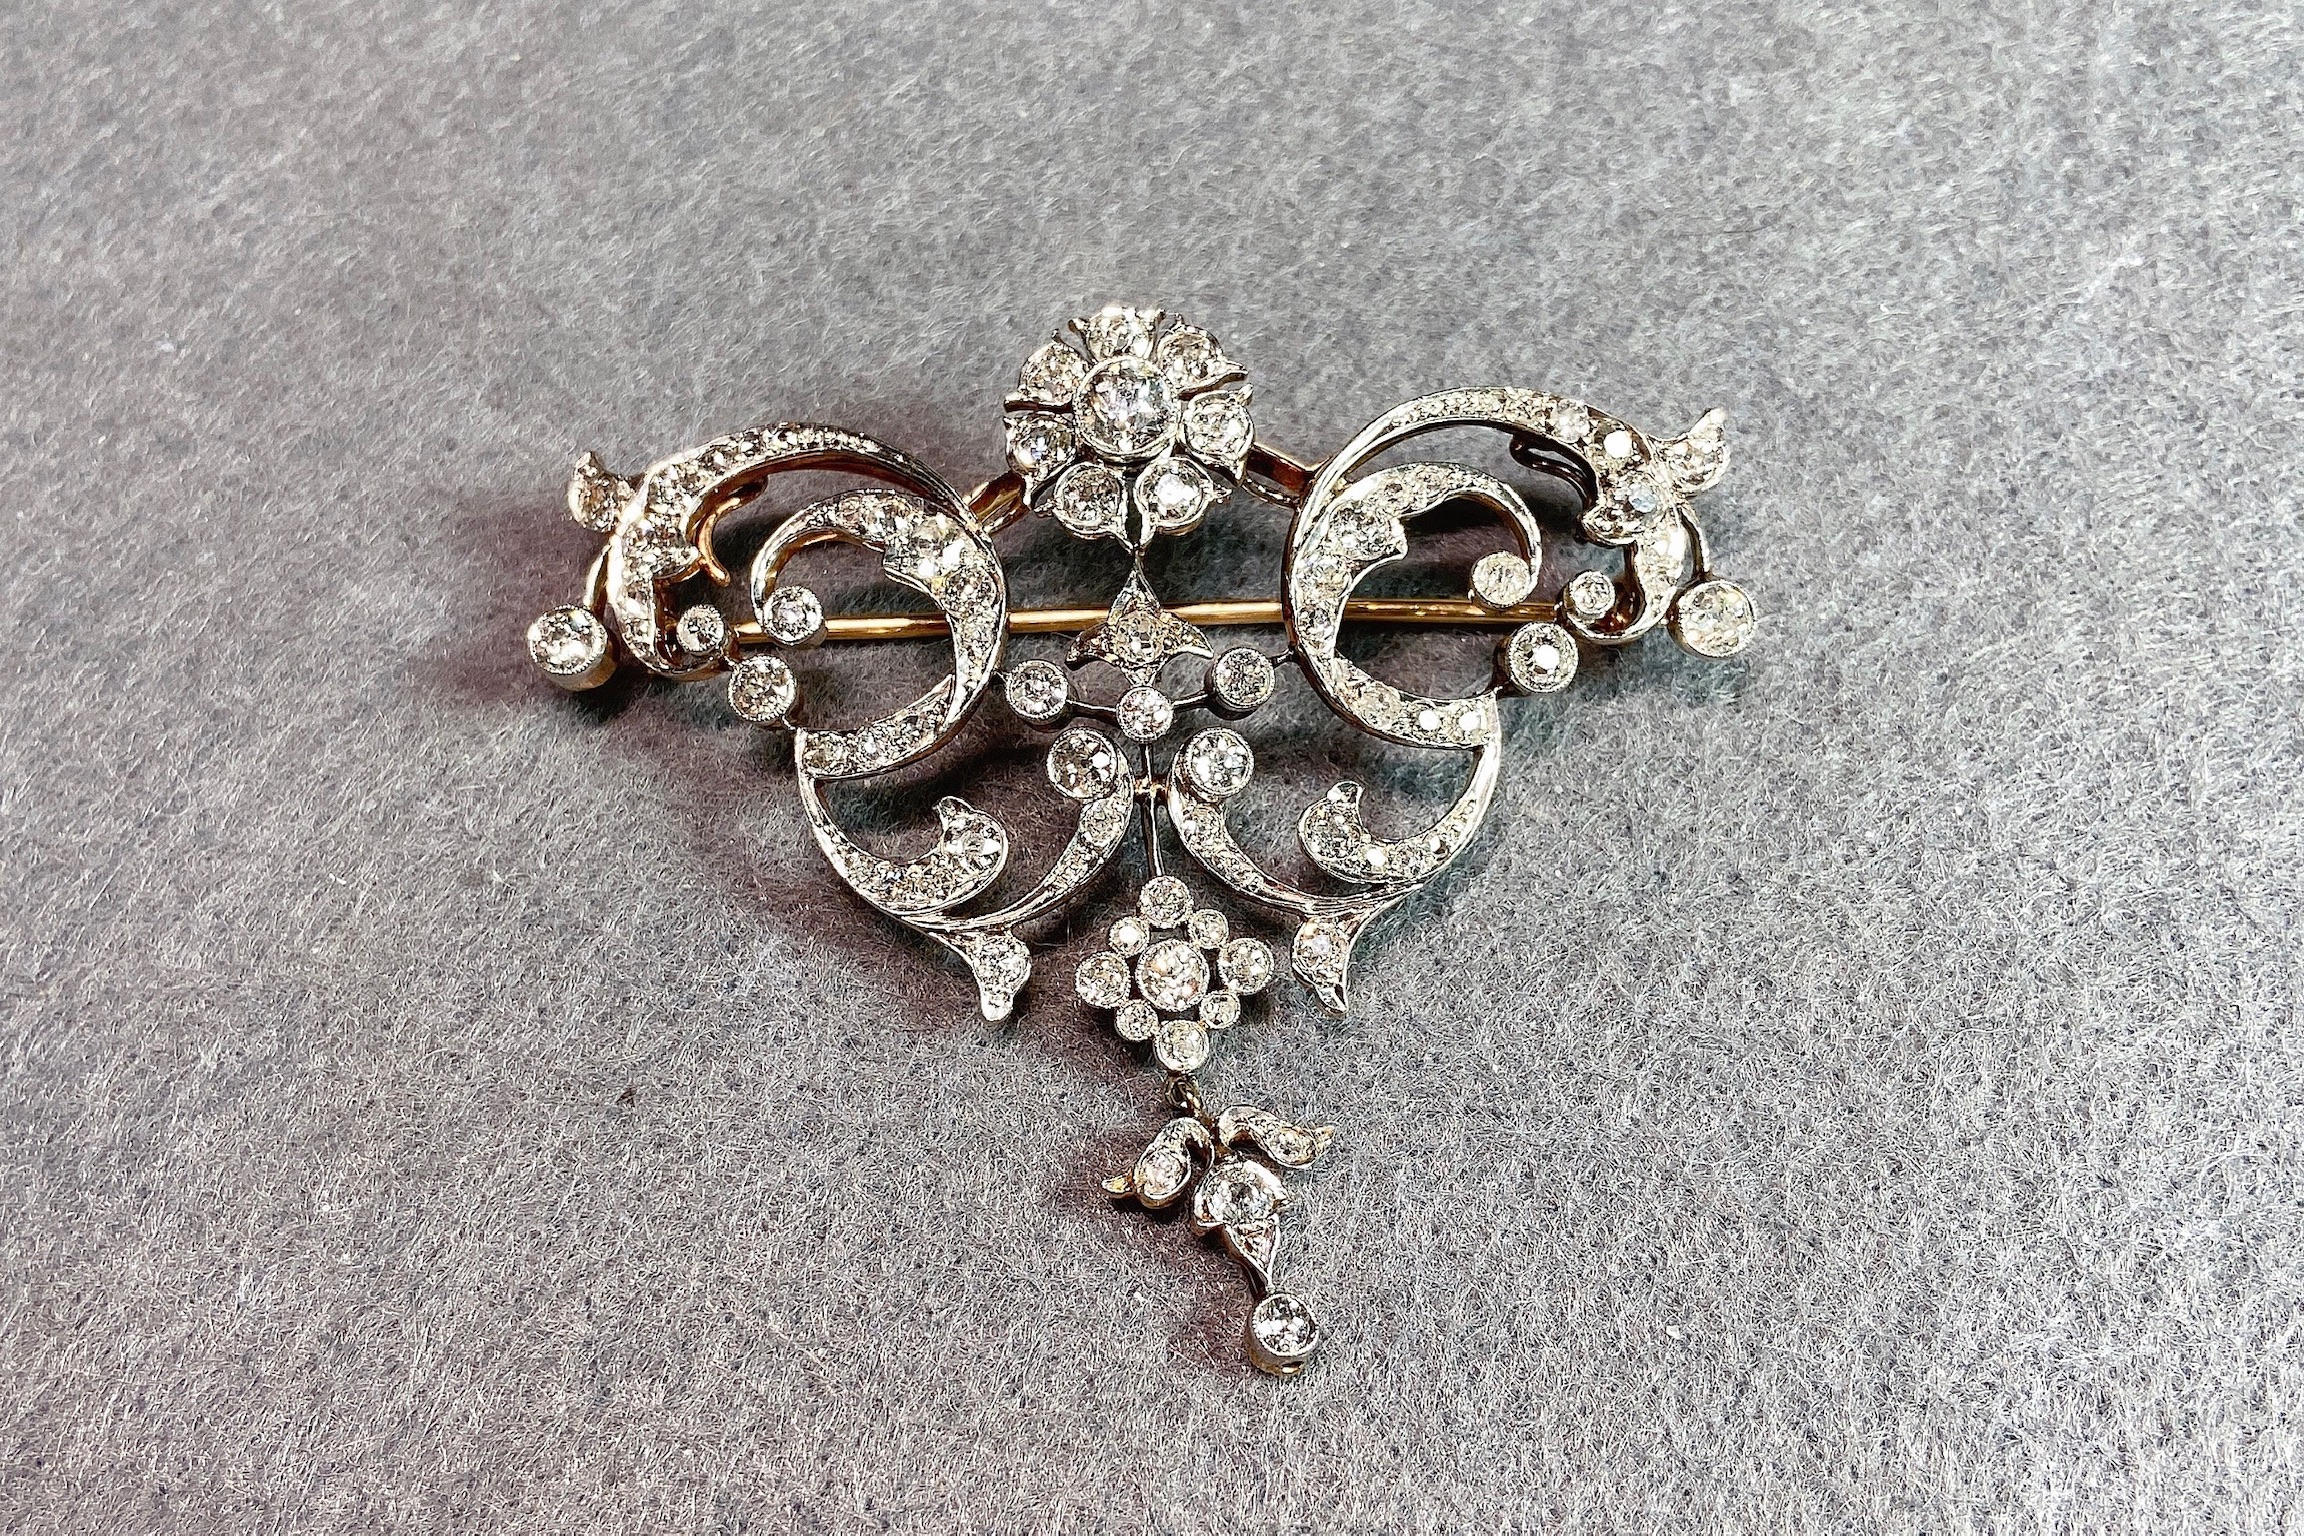 A Rare Diamond and 18K Gold Brooch, Victorian - Image 2 of 4